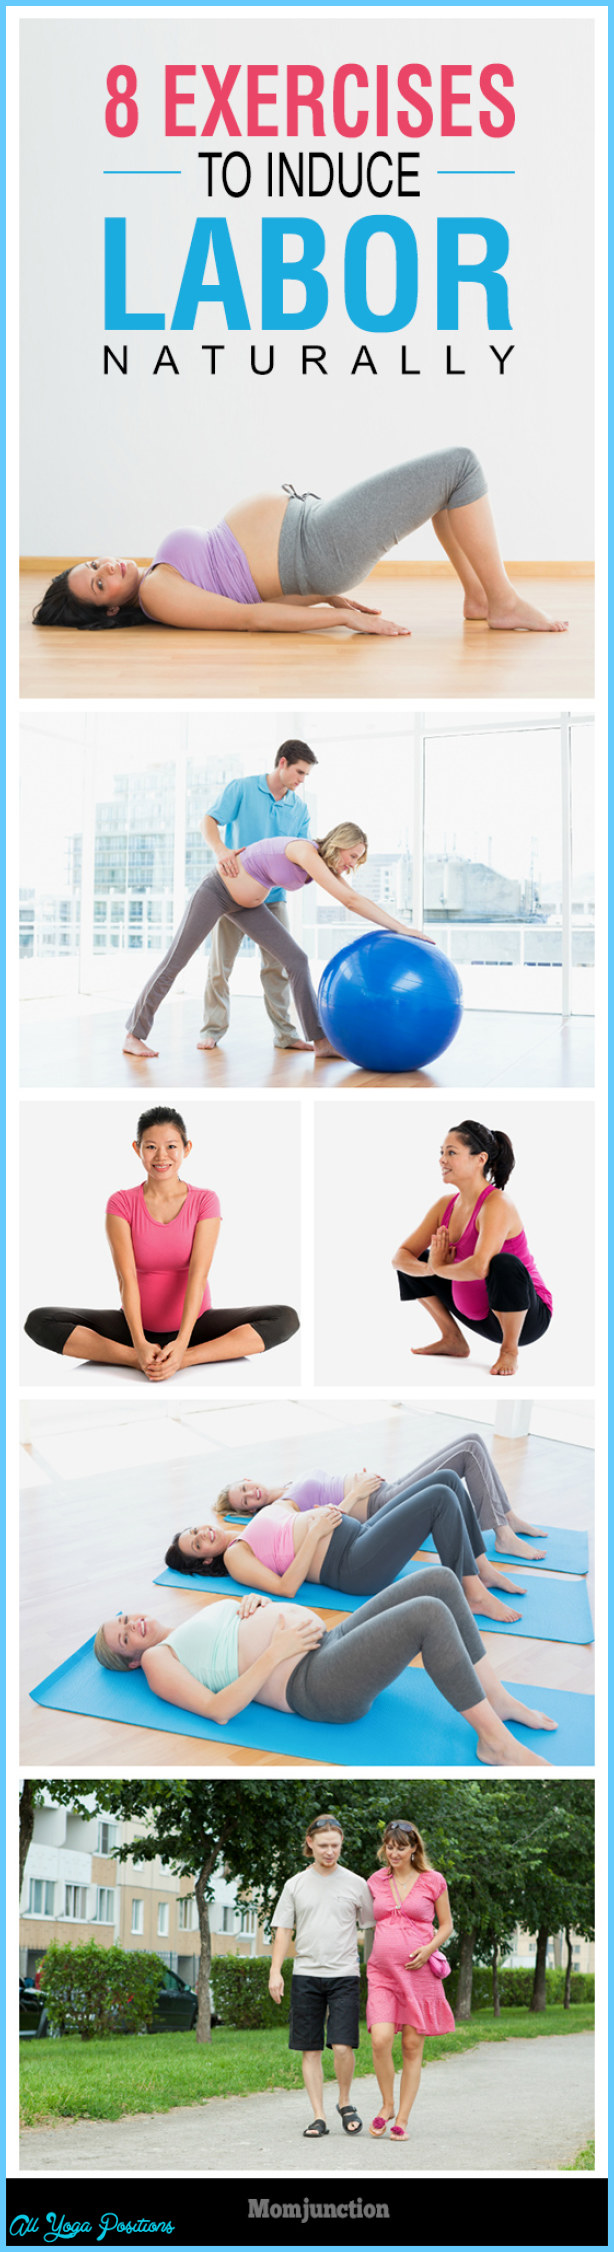 Pregnancy Exercises To Induce Labor_1.jpg